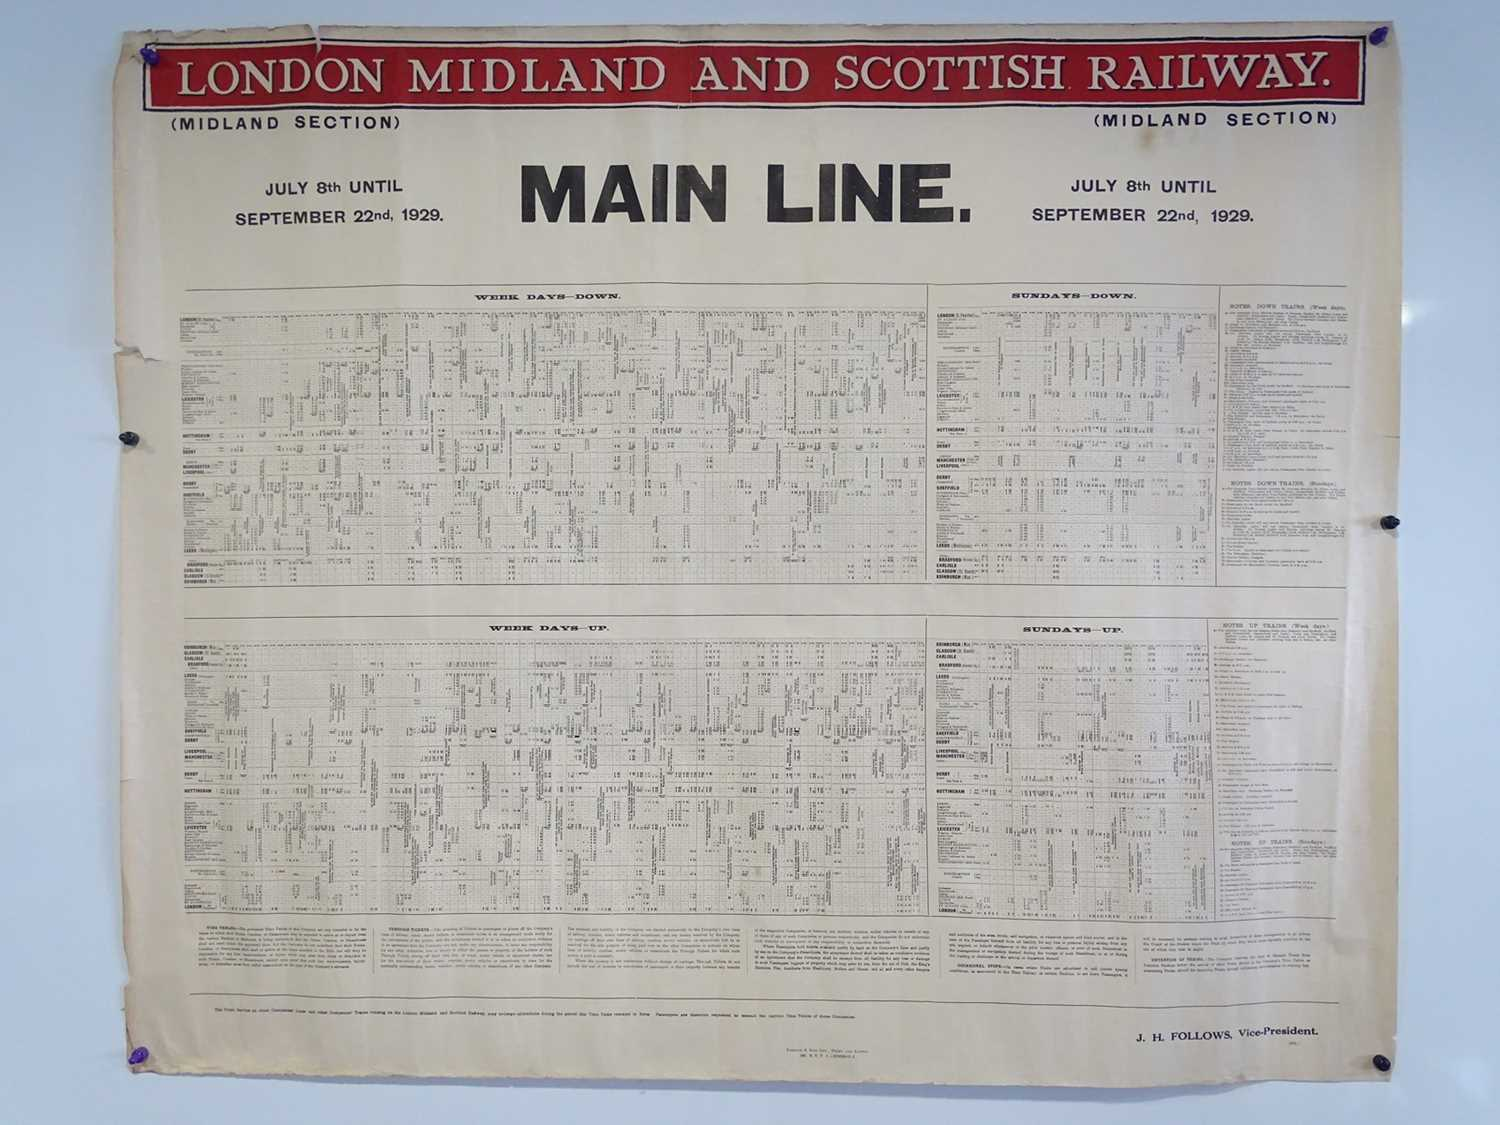 LONDON, MIDLAND and SCOTTISH RAILWAY Mainline (Midland Section) Timetable posters - July 8th -